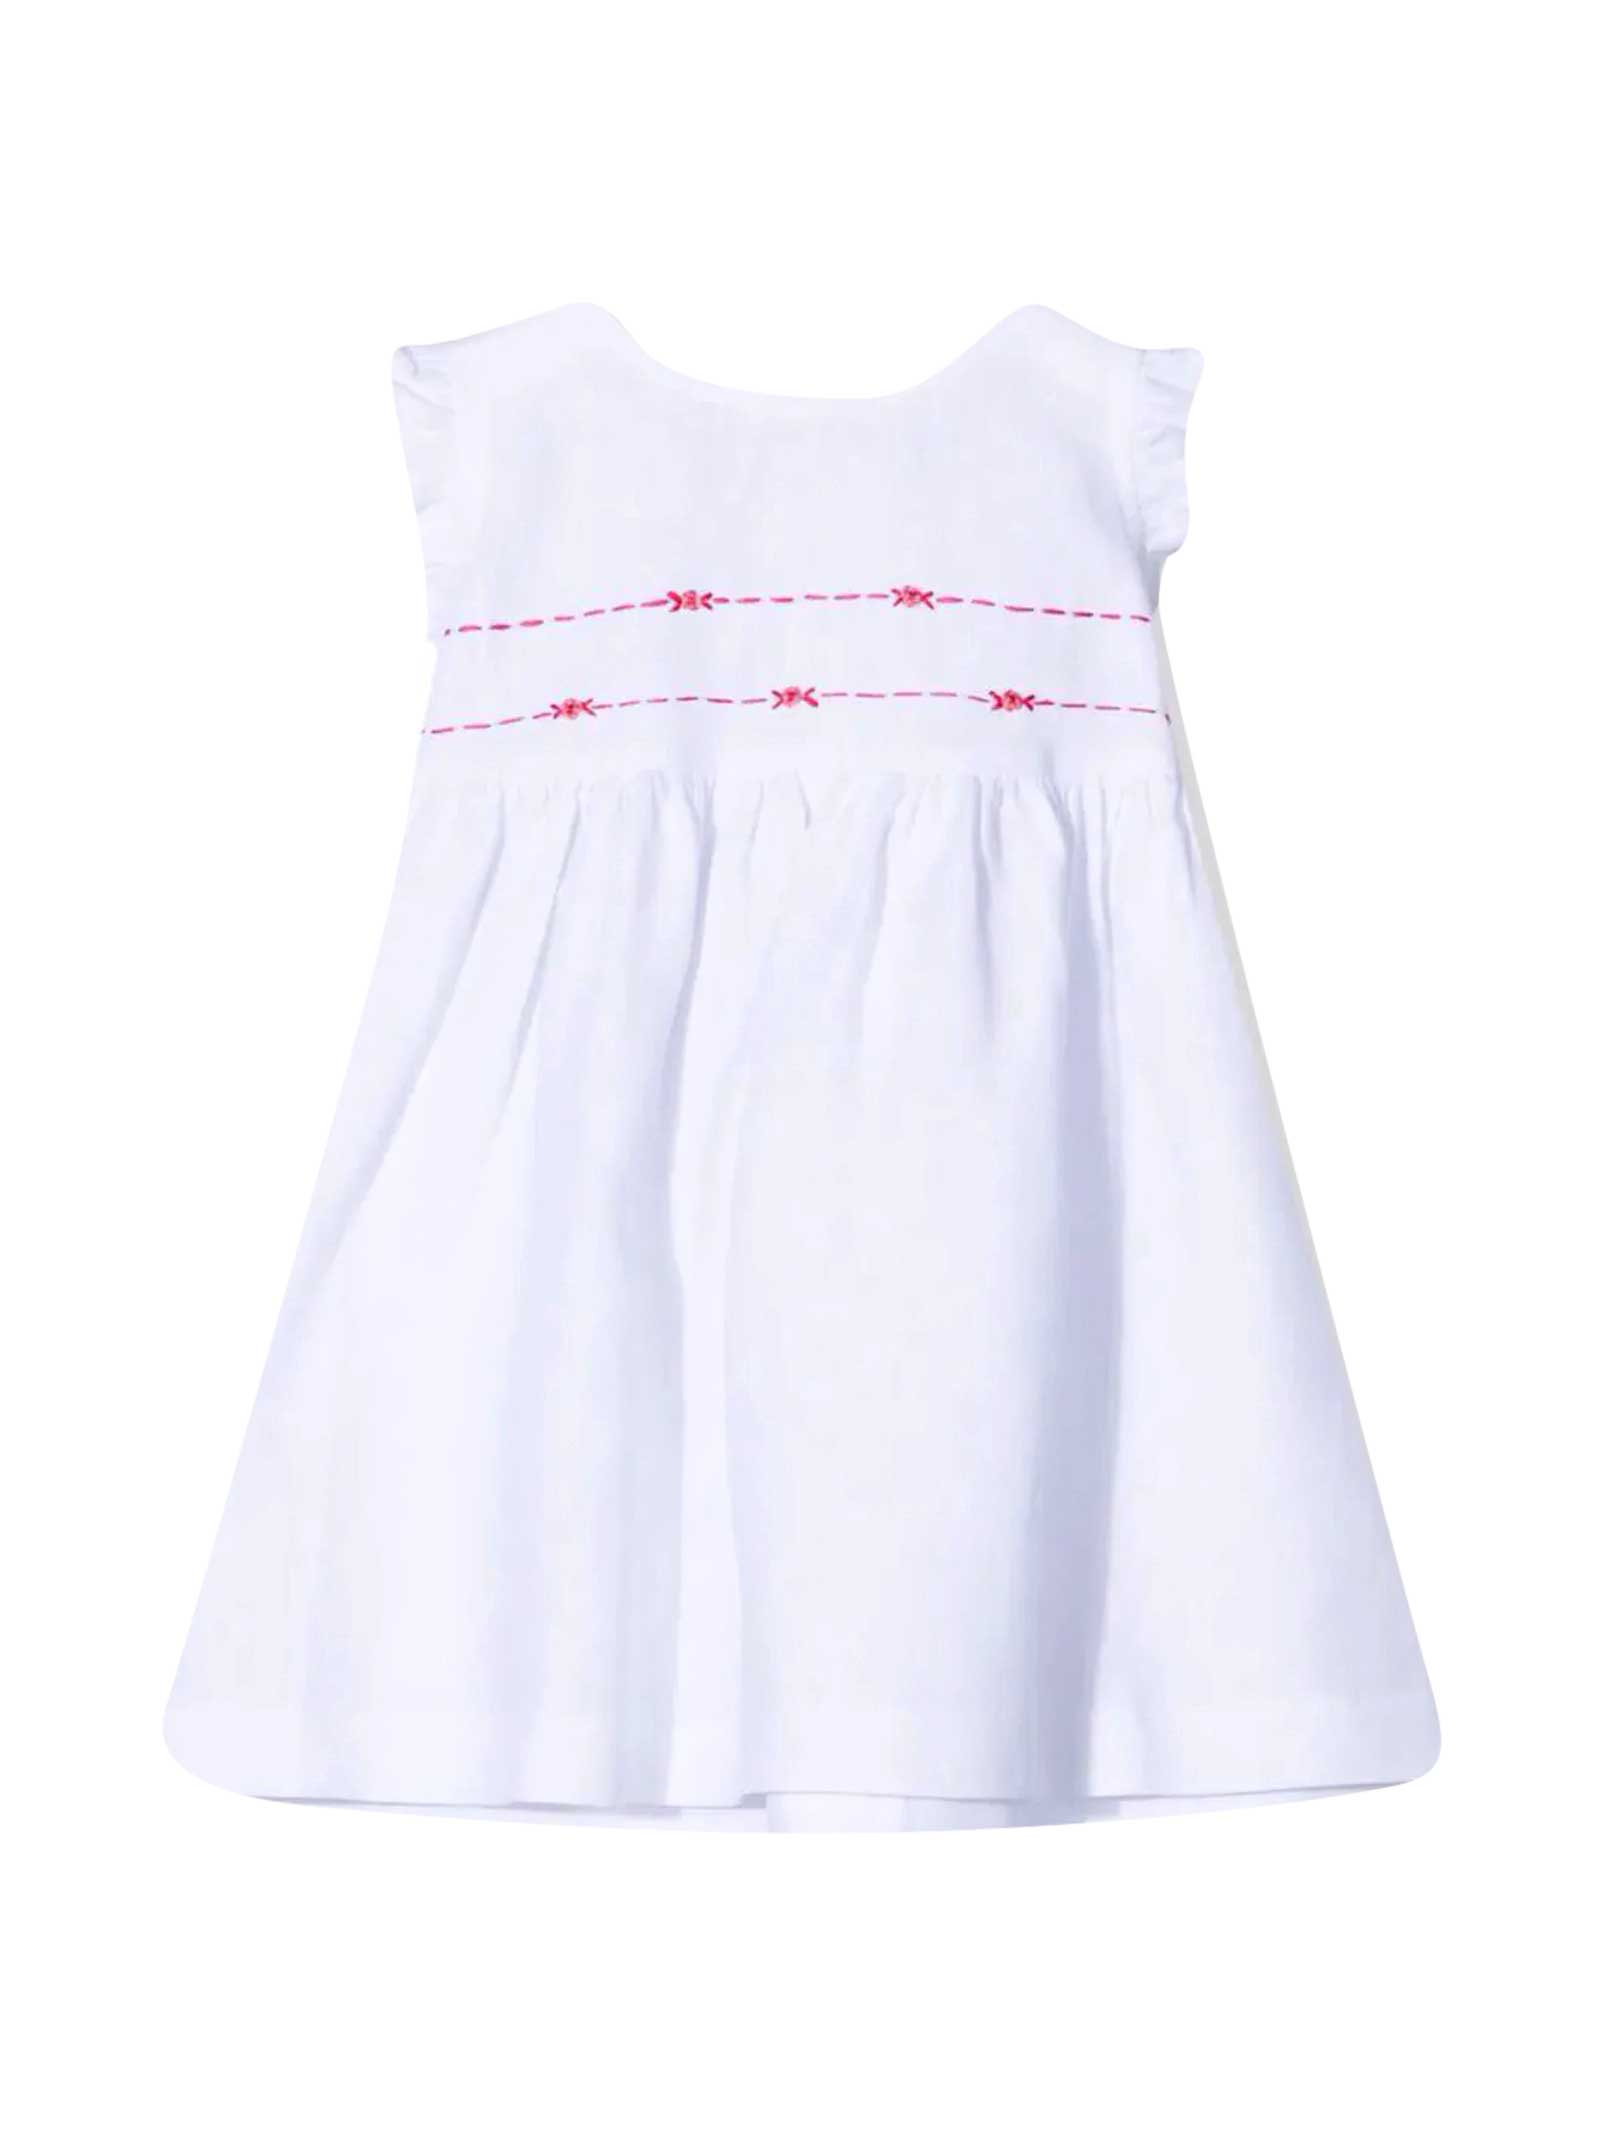 Sleeveless Dress With Embroidery